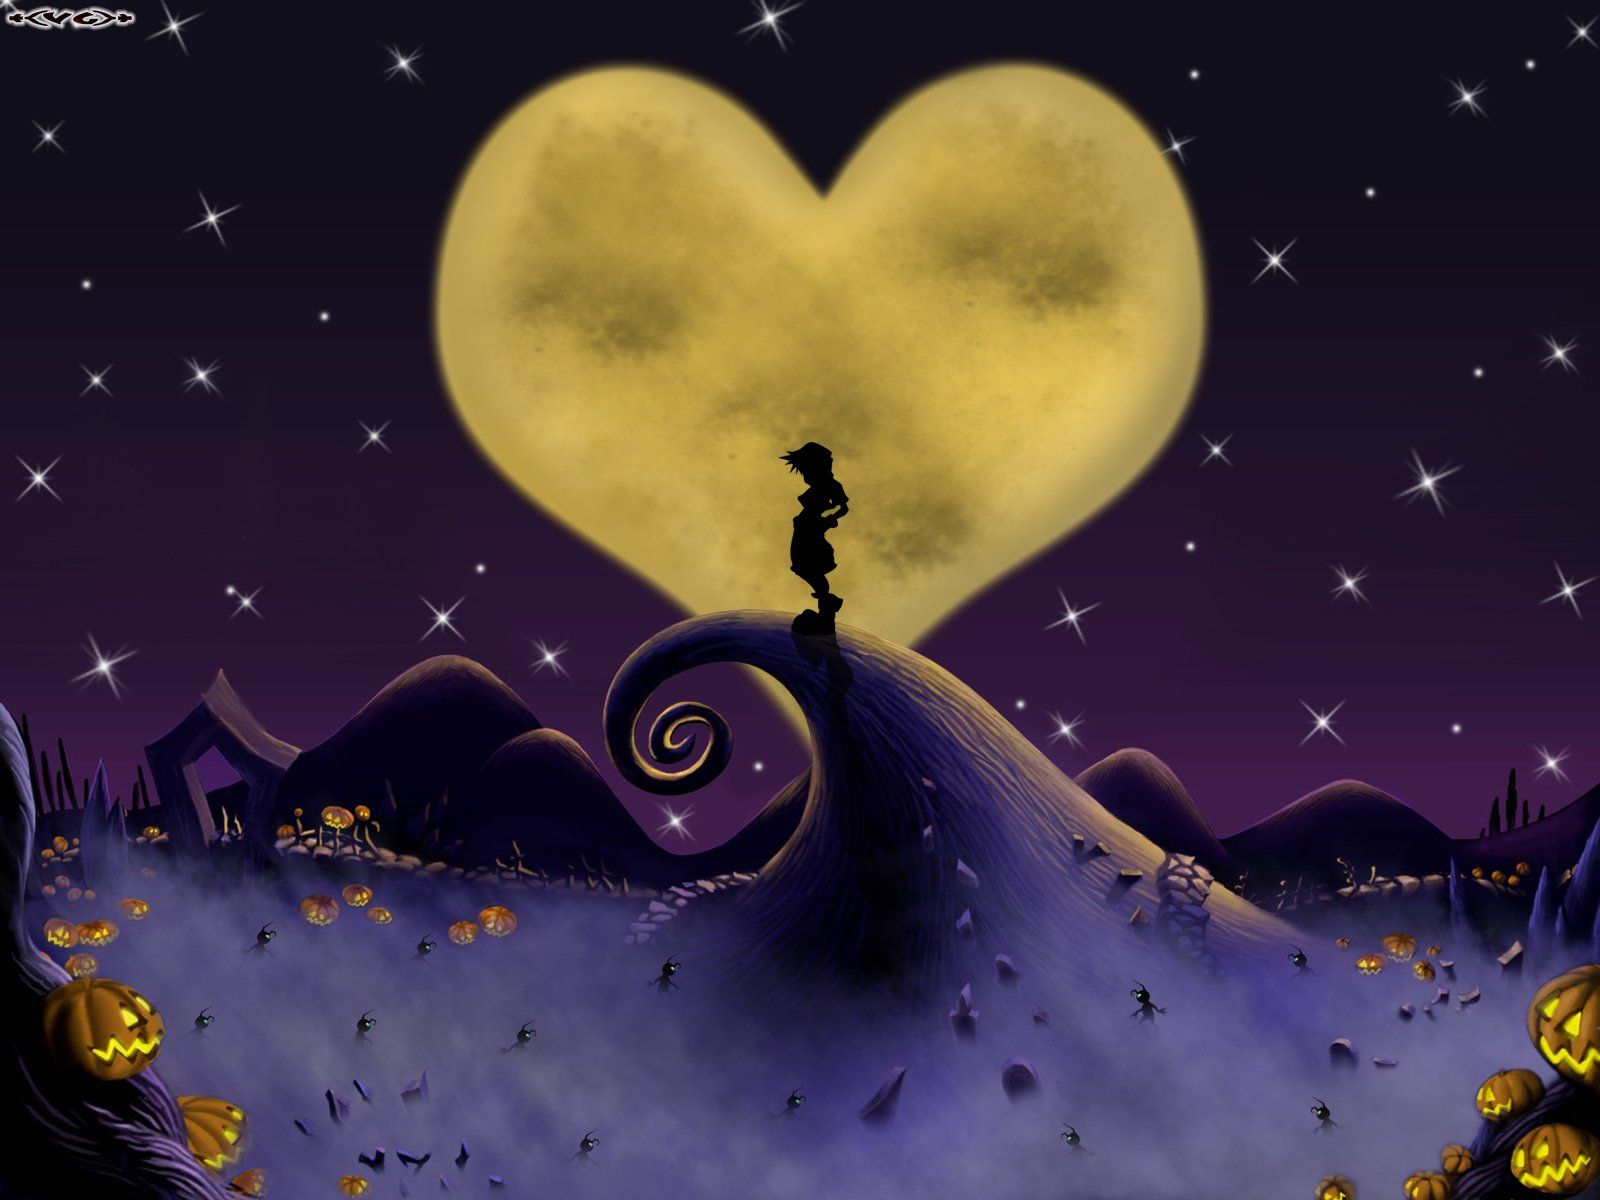 Video Game Kingdom Hearts Sora (Kingdom Hearts) The Nightmare Before ...